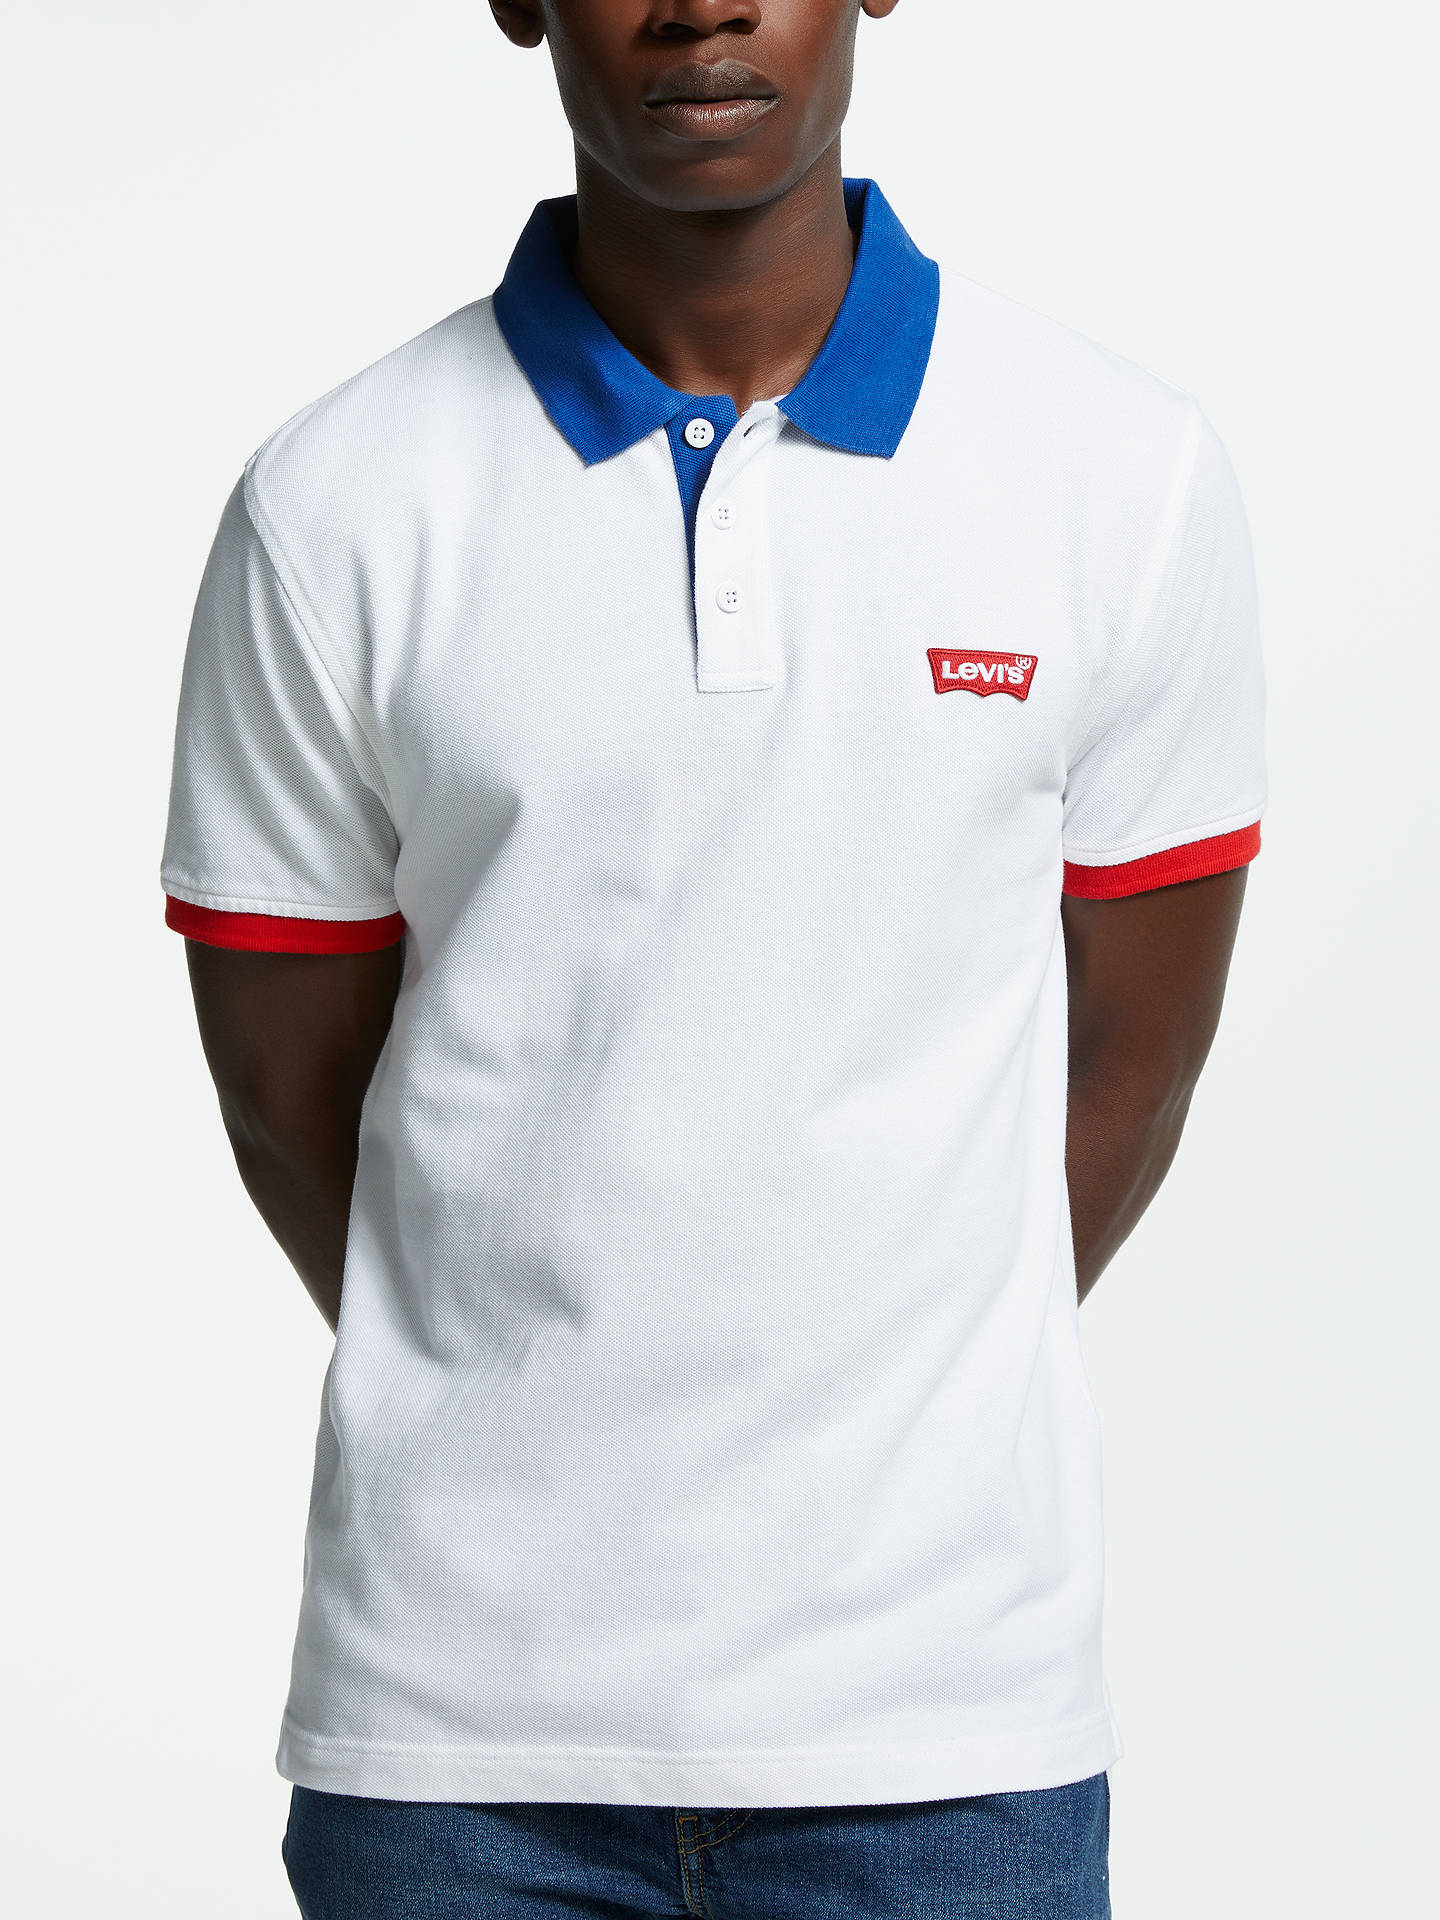 4b508b4d Buy Levi's Modern HM Polo Shirt, White/Multi, M Online at johnlewis.